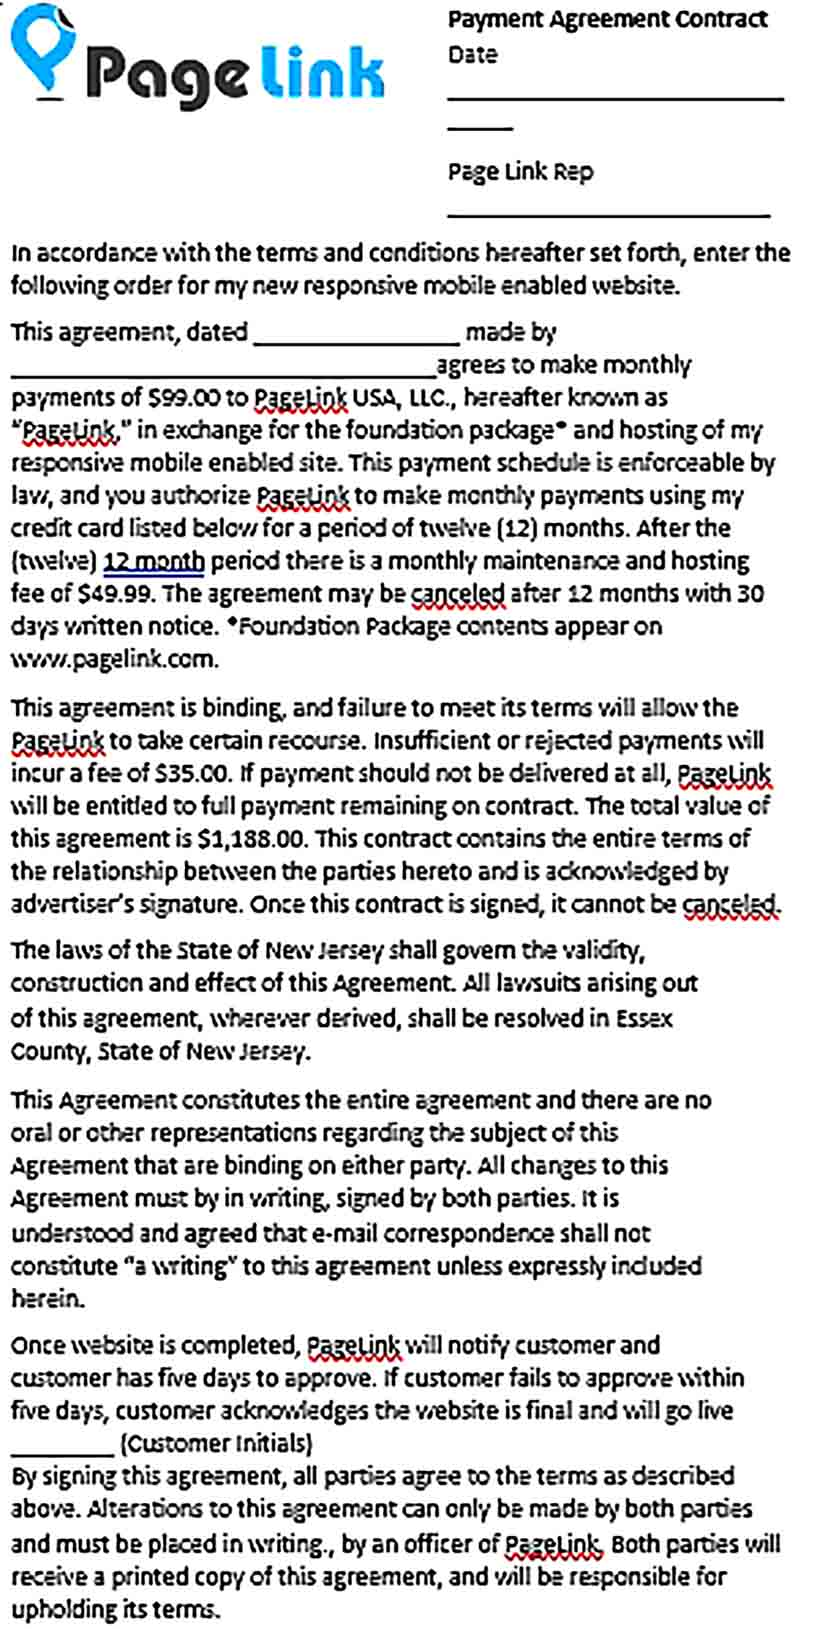 Sample Contract Payment Agreement